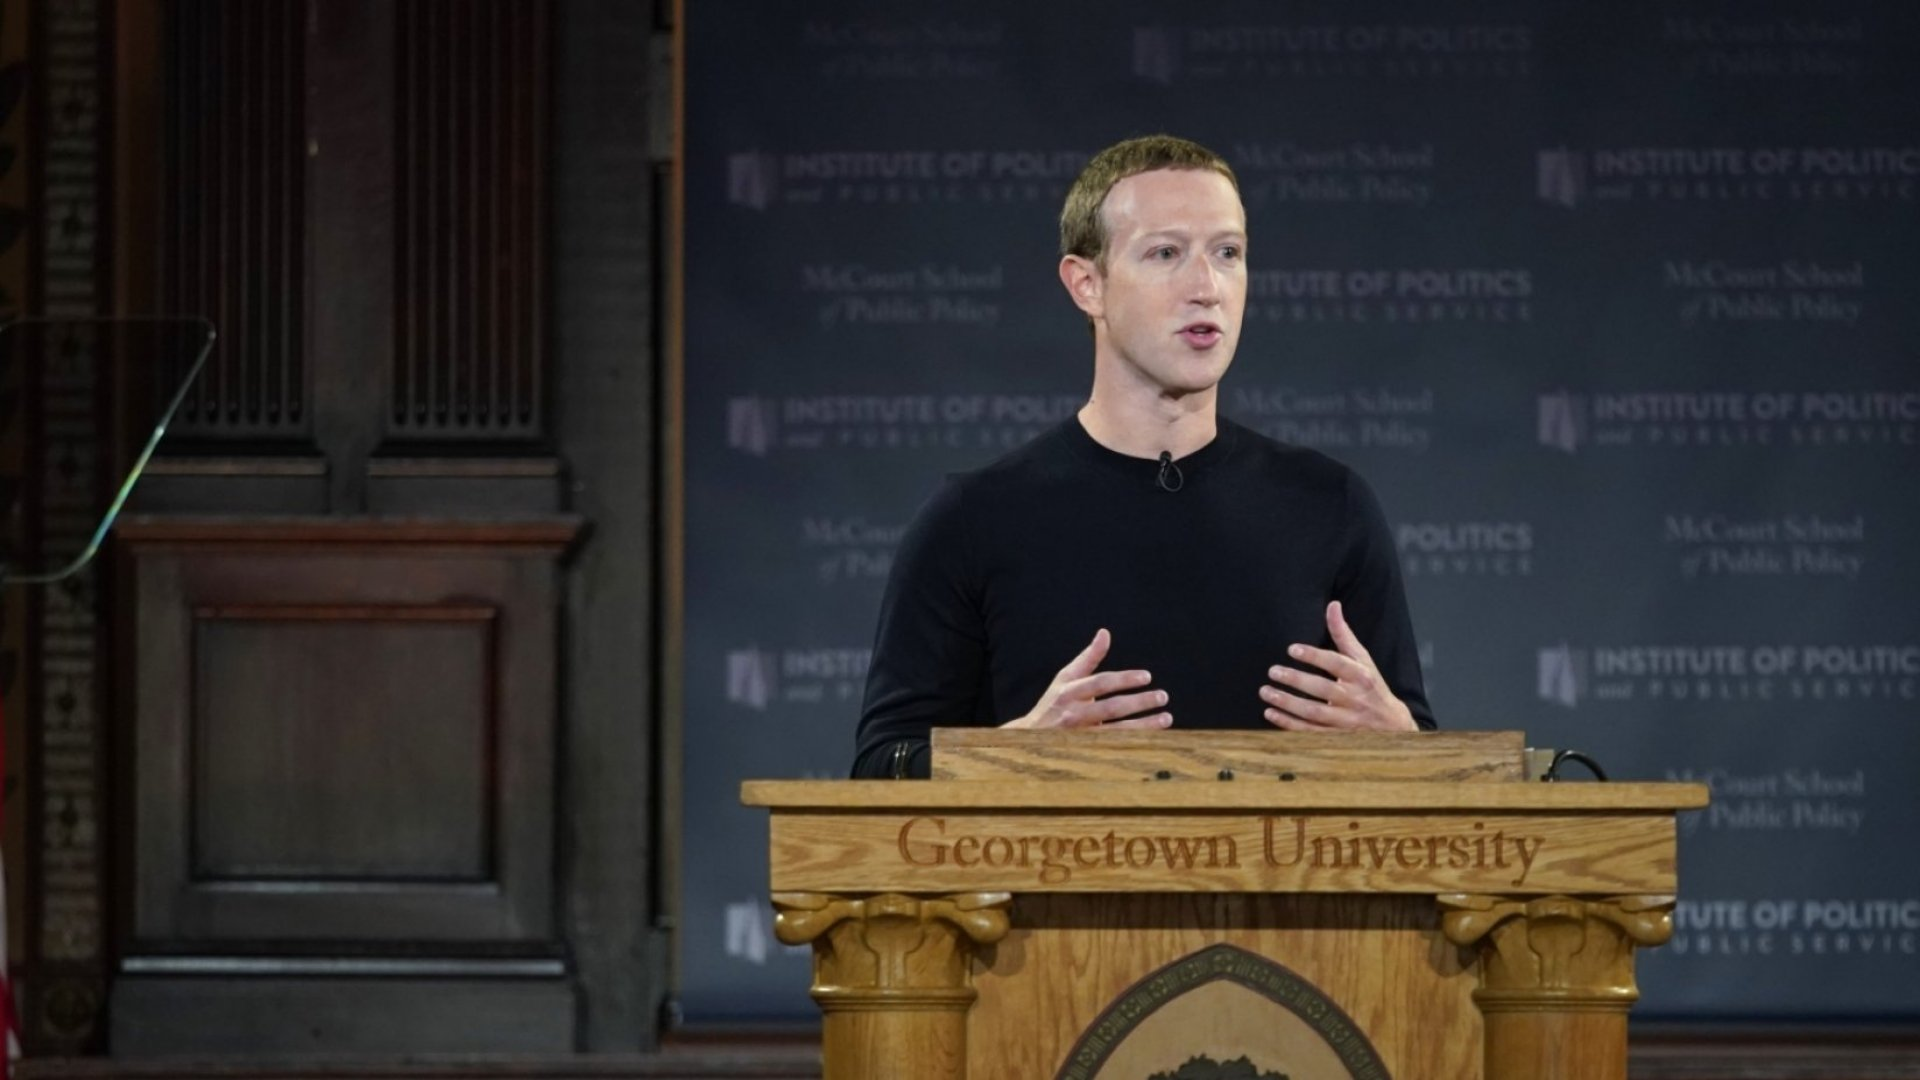 If Mark Zuckerberg Really Believes in Free Expression, Facebook Should Ditch the Algorithm